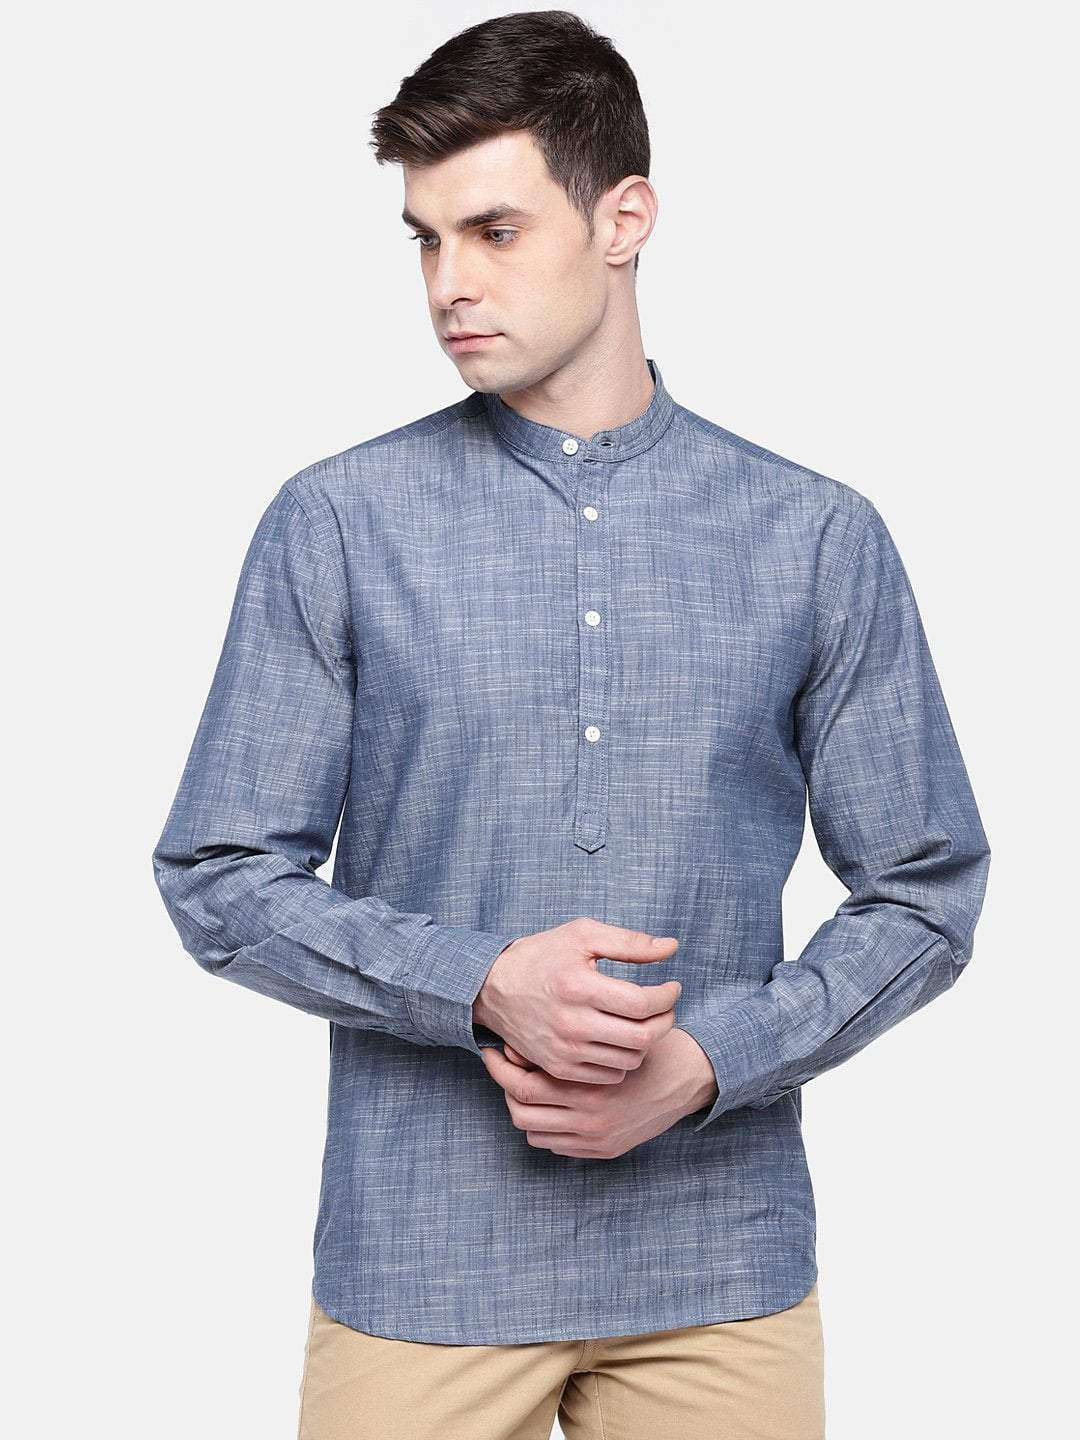 NAVY WOVEN SHIRTS | MEN'S CASUAL WEAR REGULAR FIT WOVEN SHIRTS